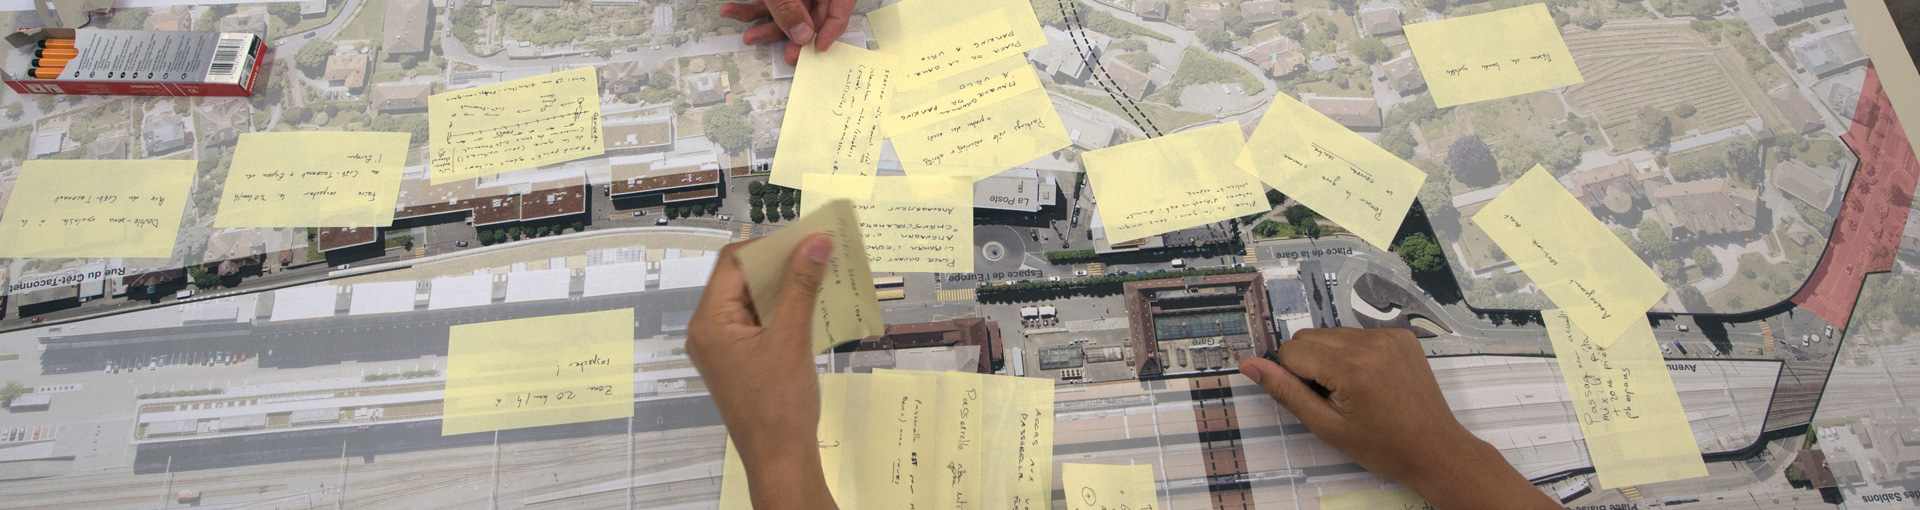 Des post-it illustrant les démarches participatives de la Ville